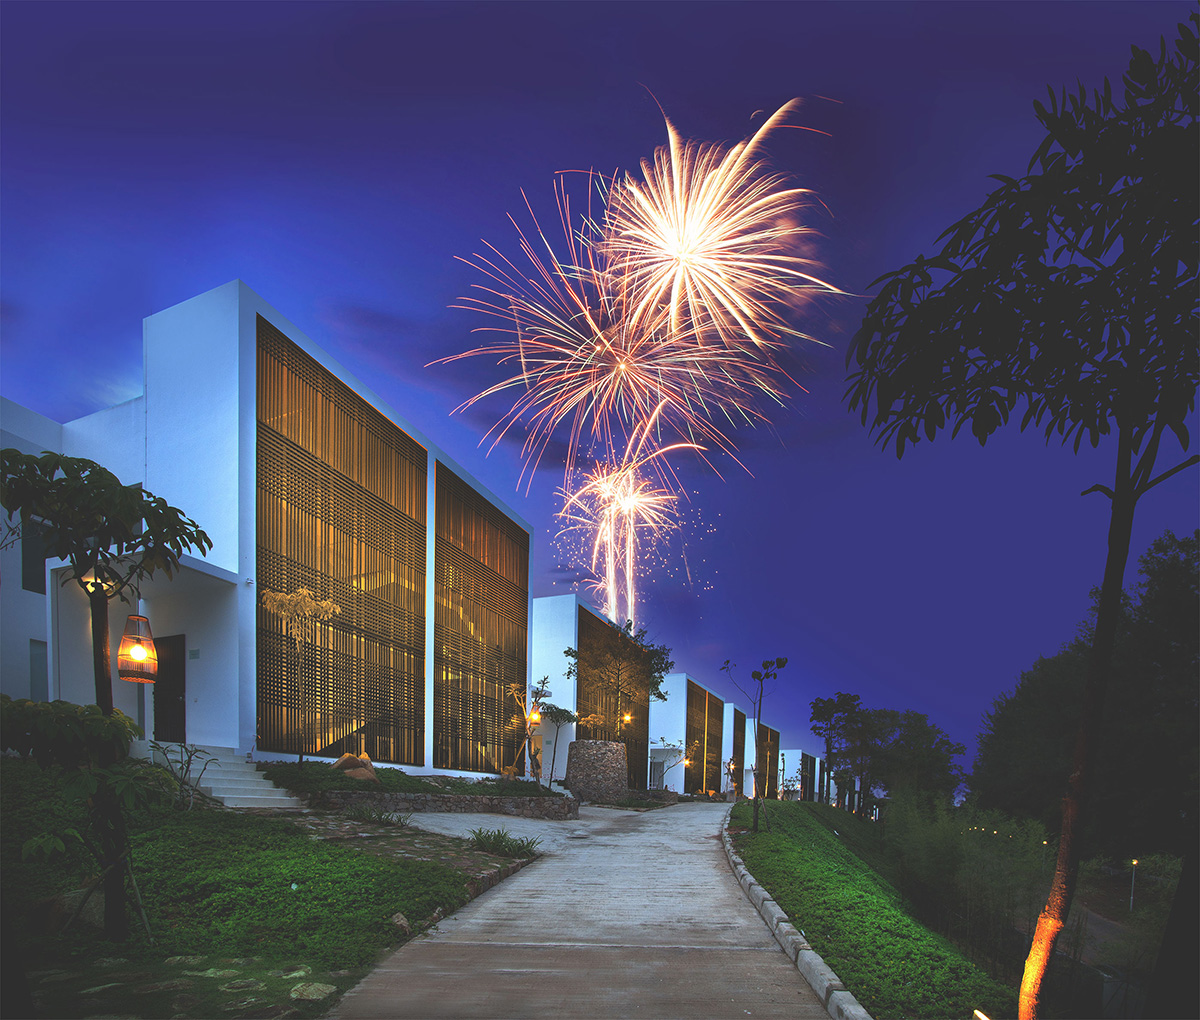 Catch-the-fireworks-display-at-Montigo-Resorts-Nongsa